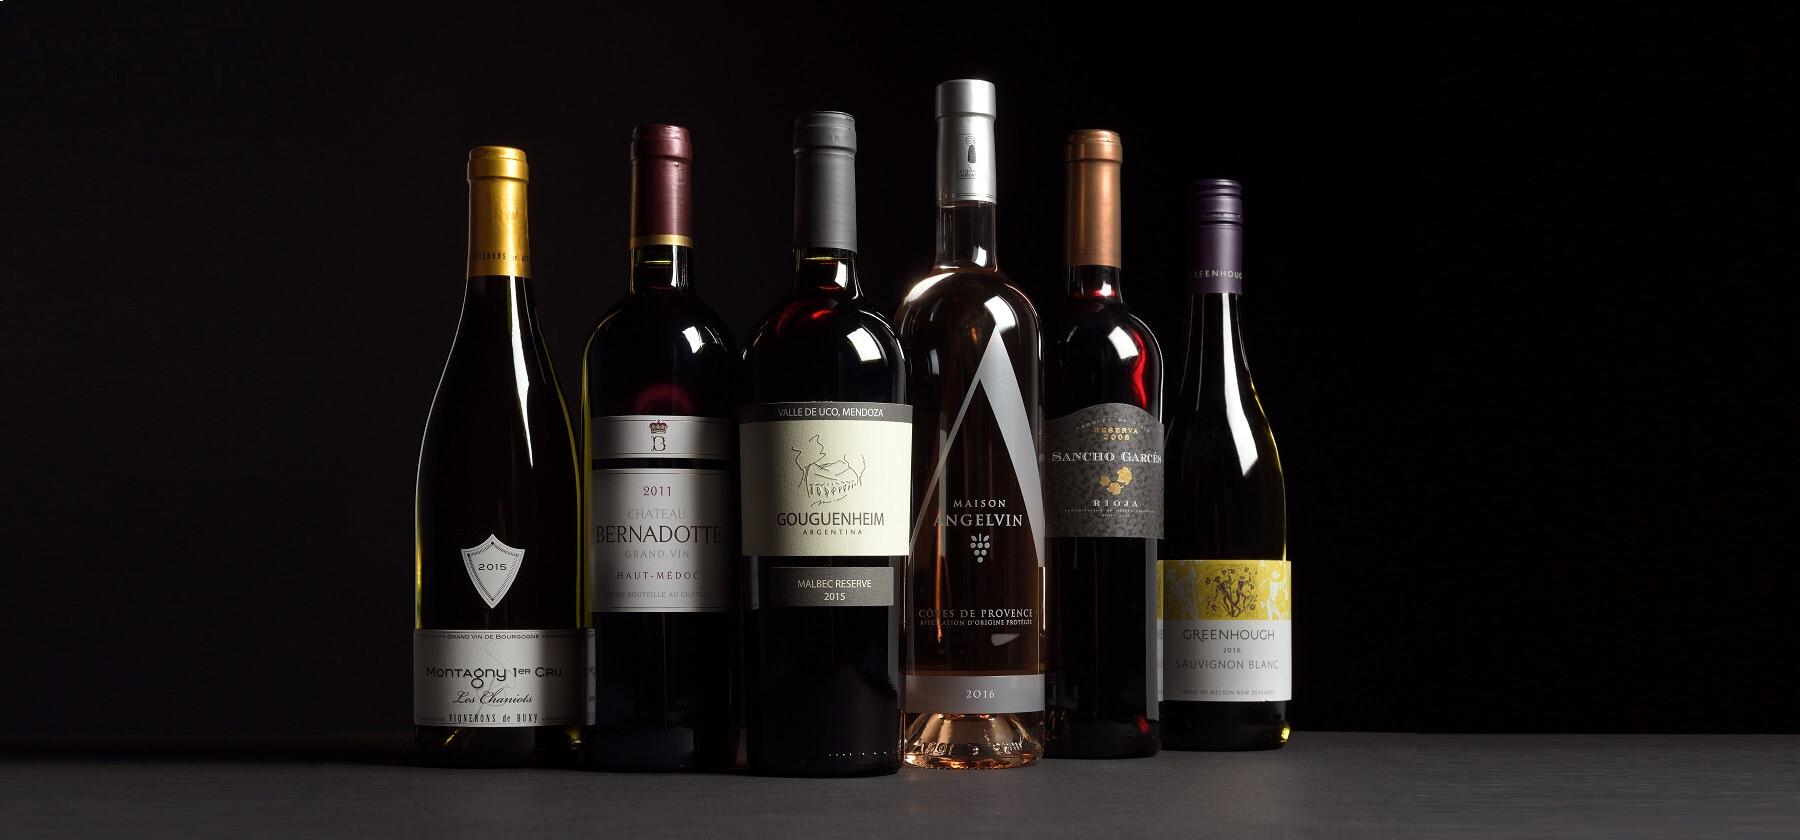 SALE NOW ON Save up to 25% on over 50 wines